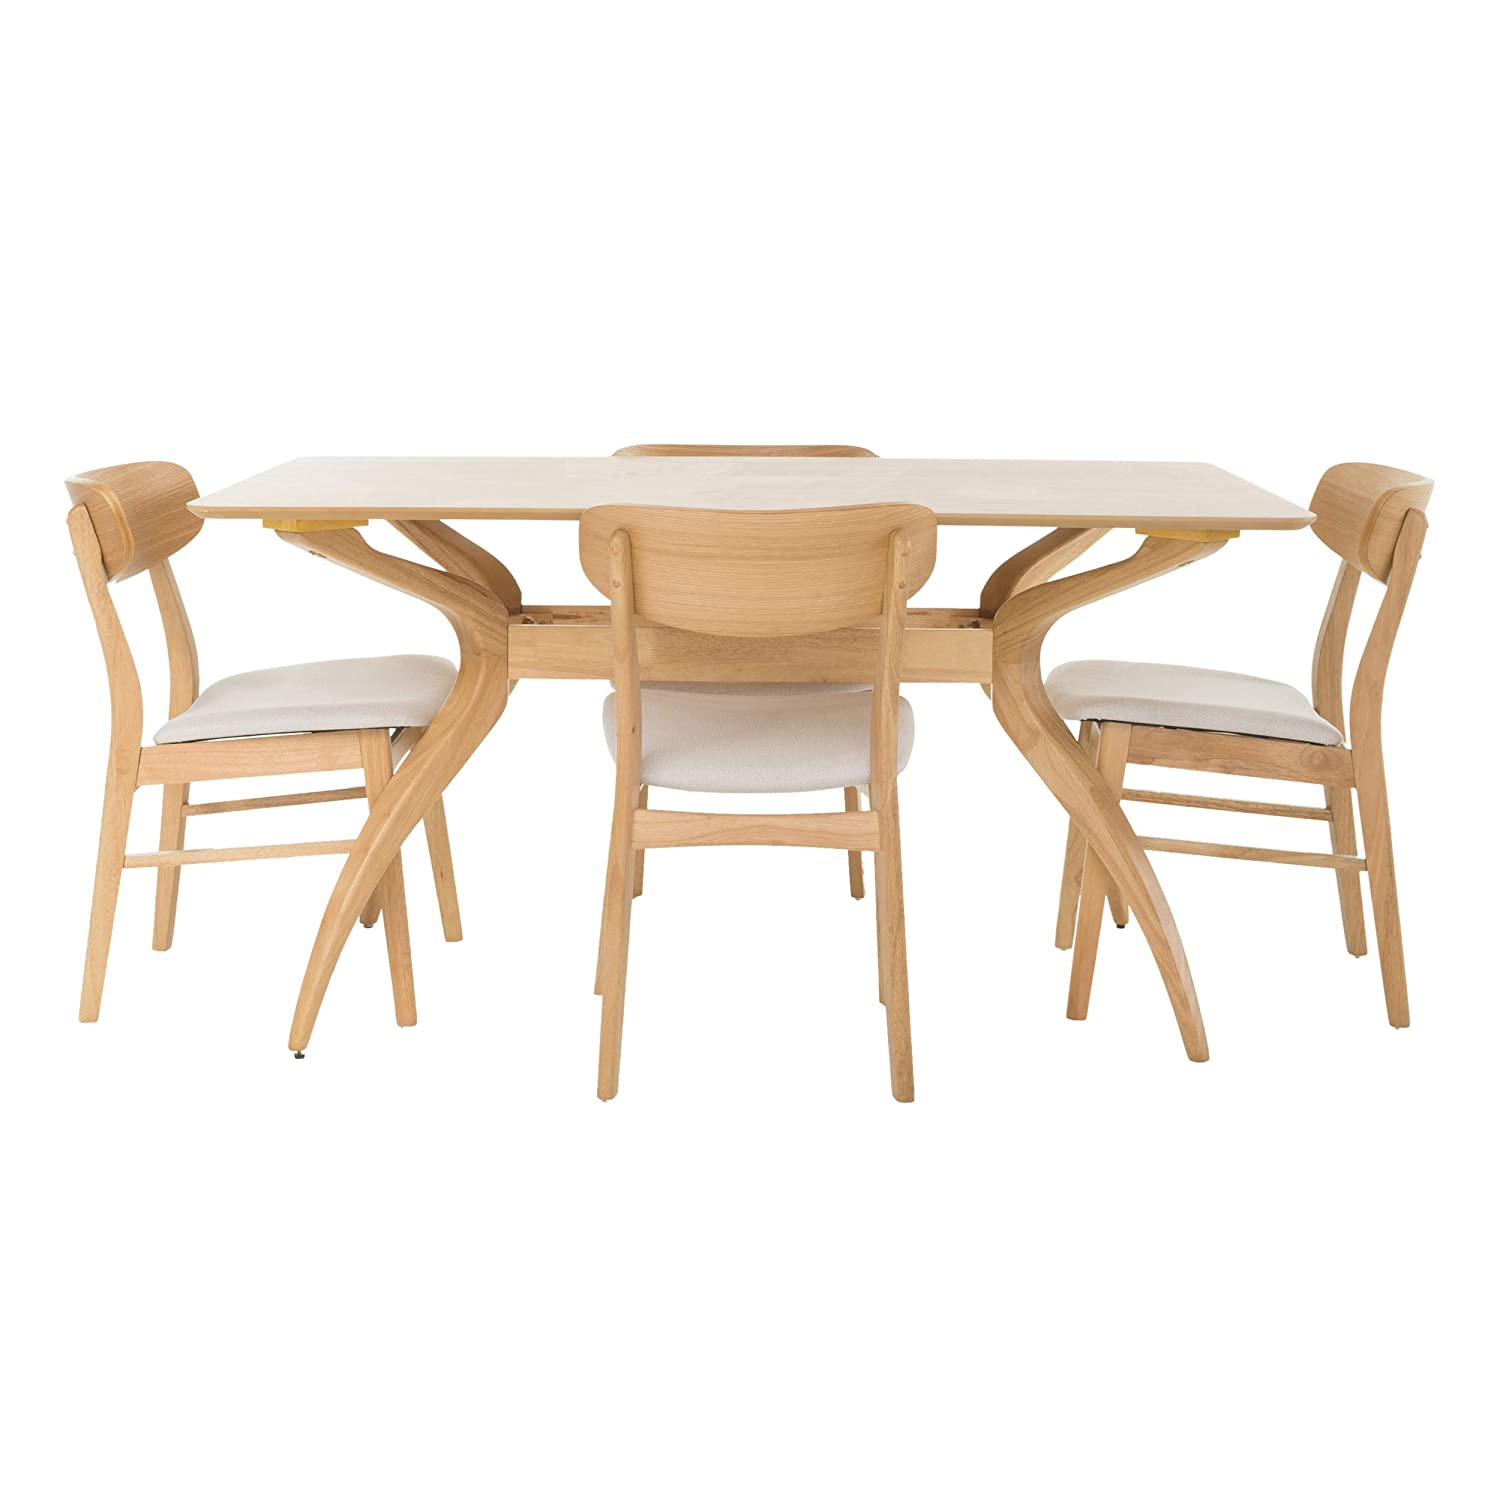 GDFStudio 299329 Leona Mid Century Natural Oak Finish 5 Piece Dining Set Light Beige ,